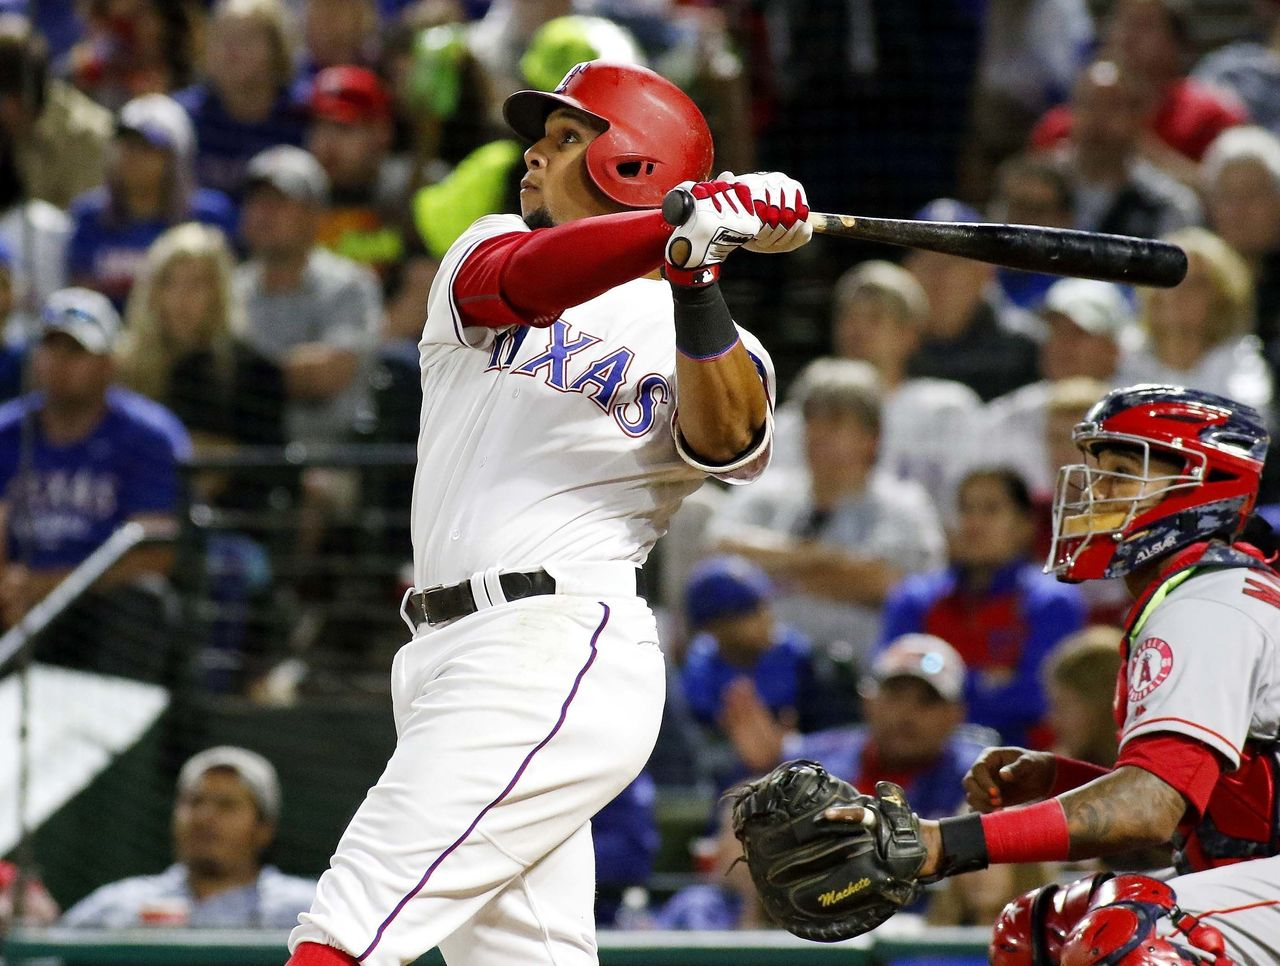 Cropped 2017 04 30t020130z 1494203136 nocid rtrmadp 3 mlb los angeles angels at texas rangers